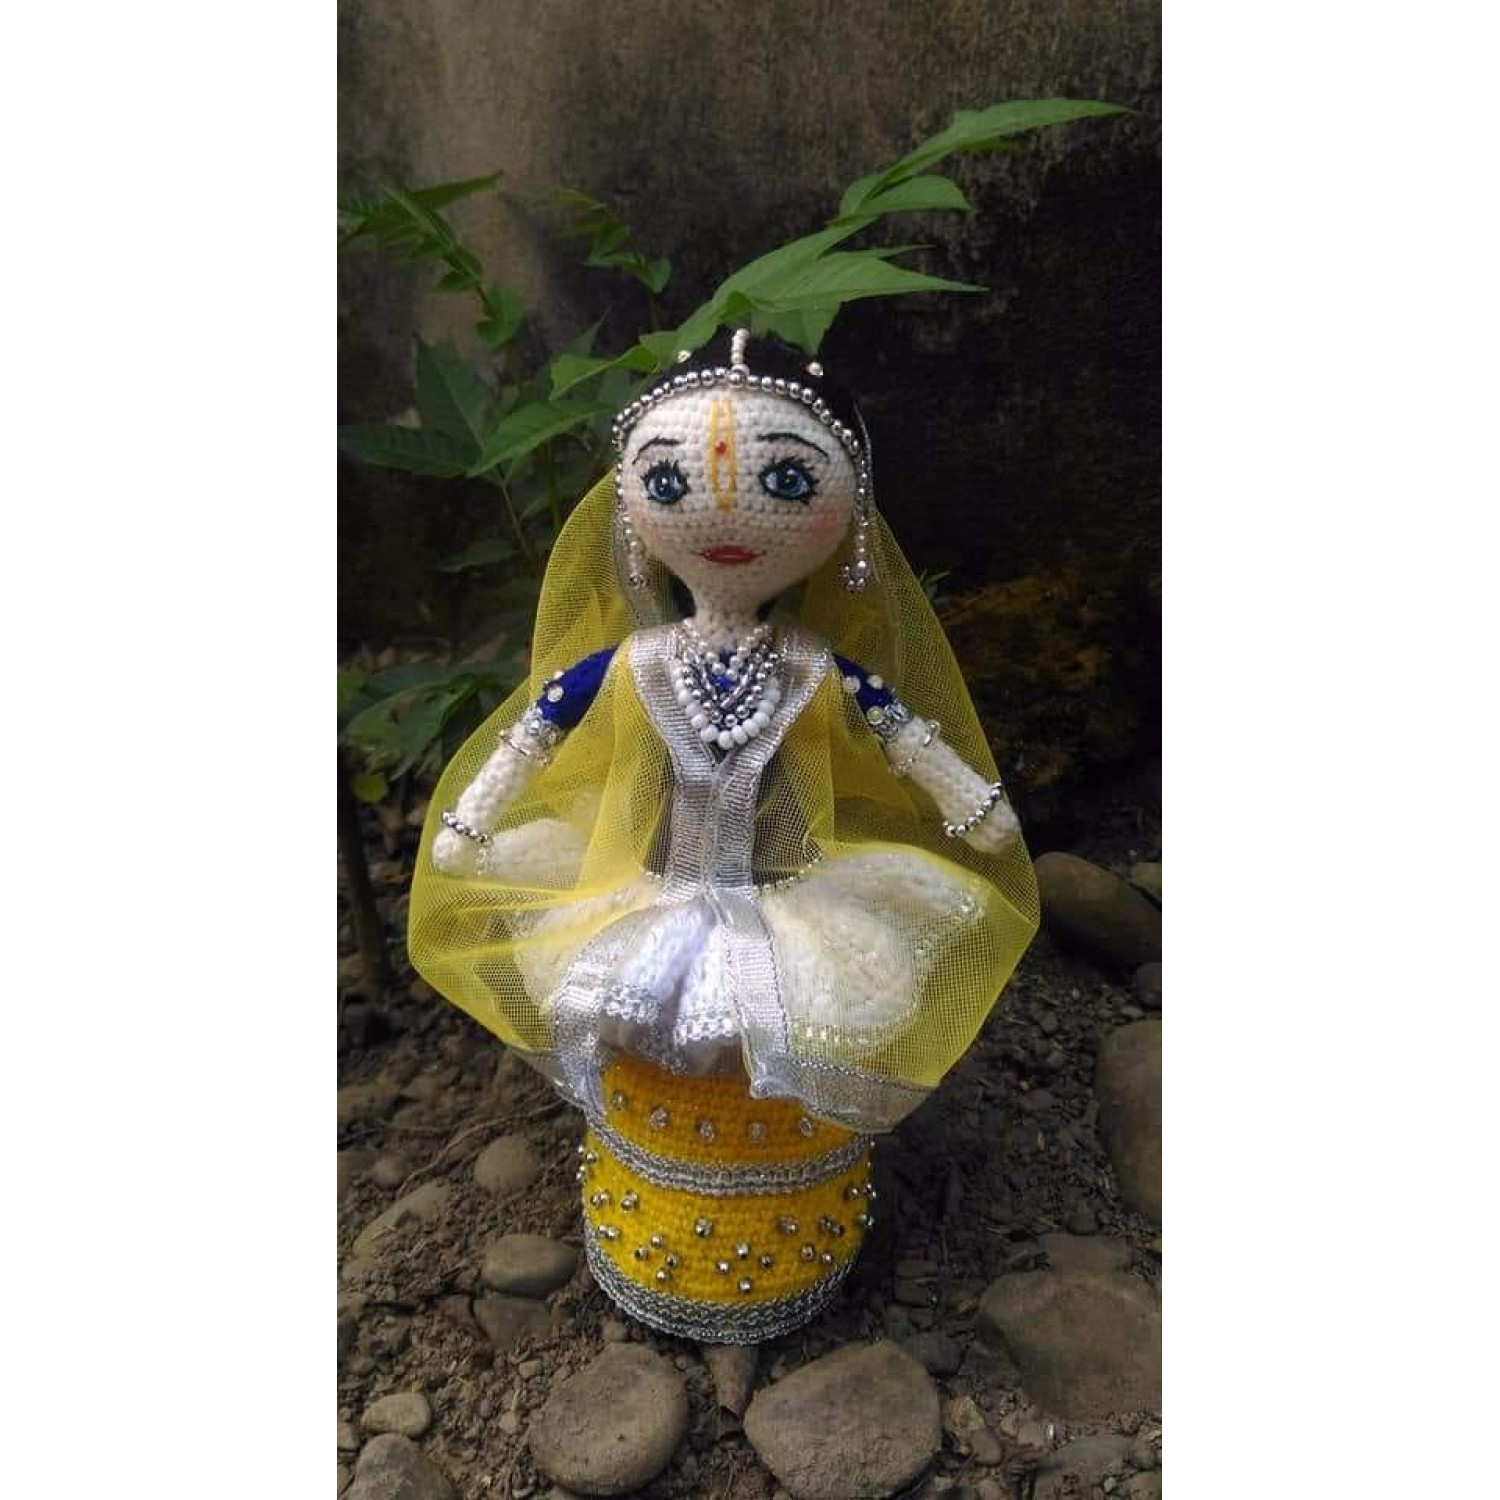 Handmade Manipuri Bride ( Suitable for 3+ age group)- Only one